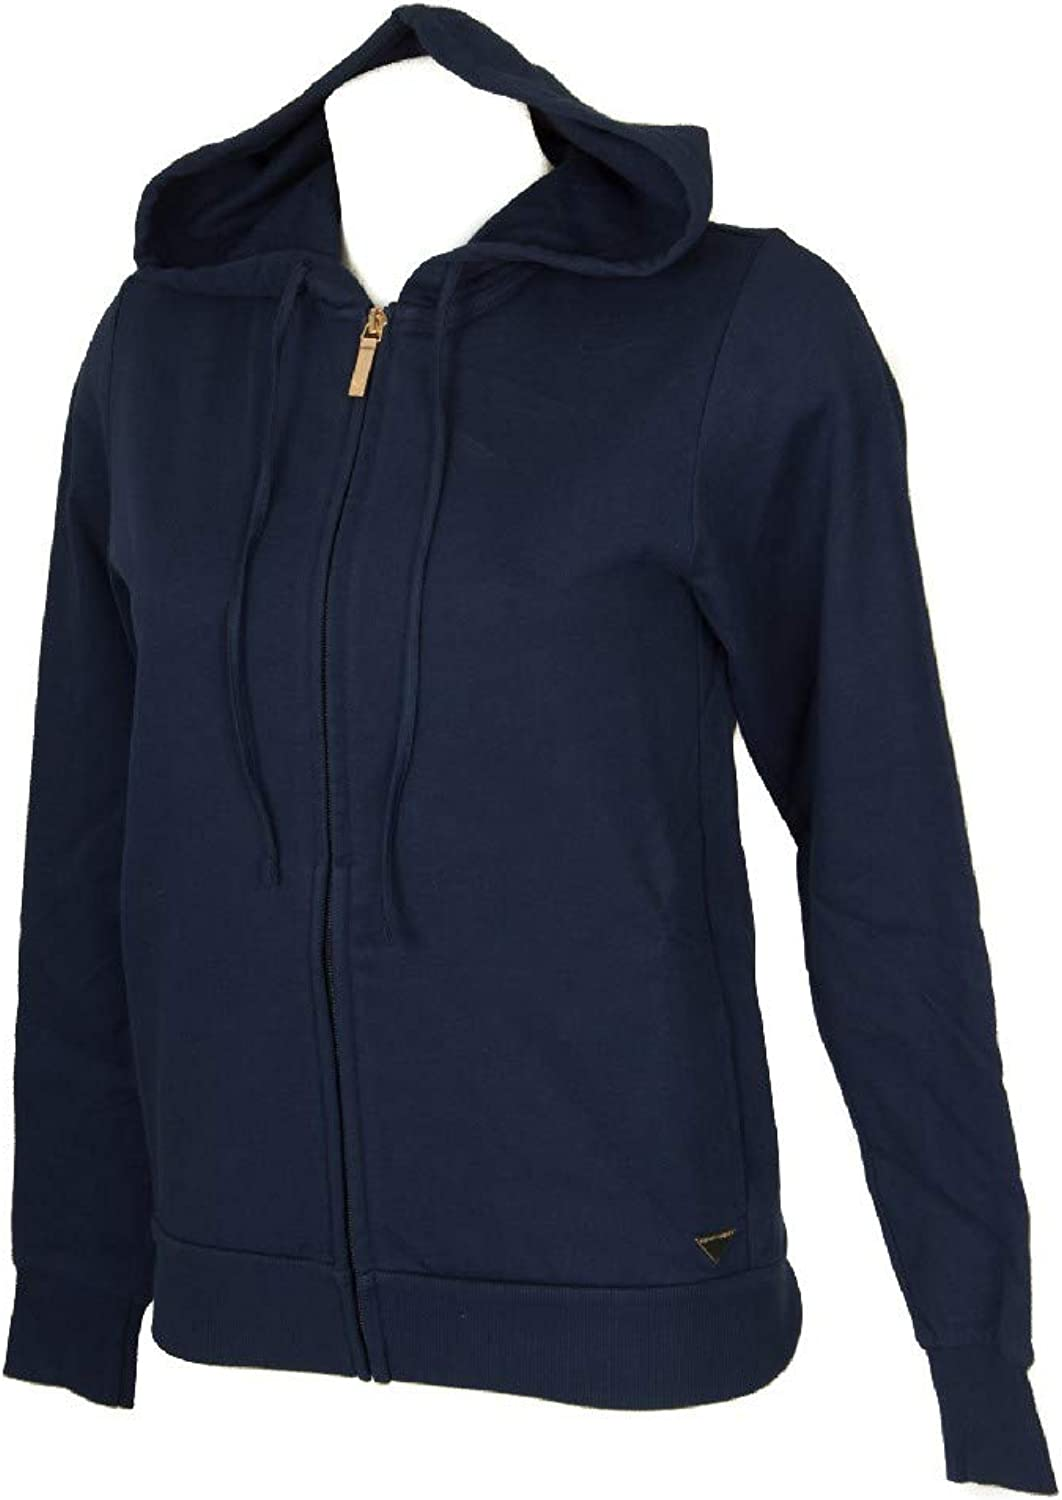 Emporio Armani Women's Knitted Sweatshirt Jacket with Zip and Hood Long Sleeve Leisure time Loungewear Article 163836 8A251